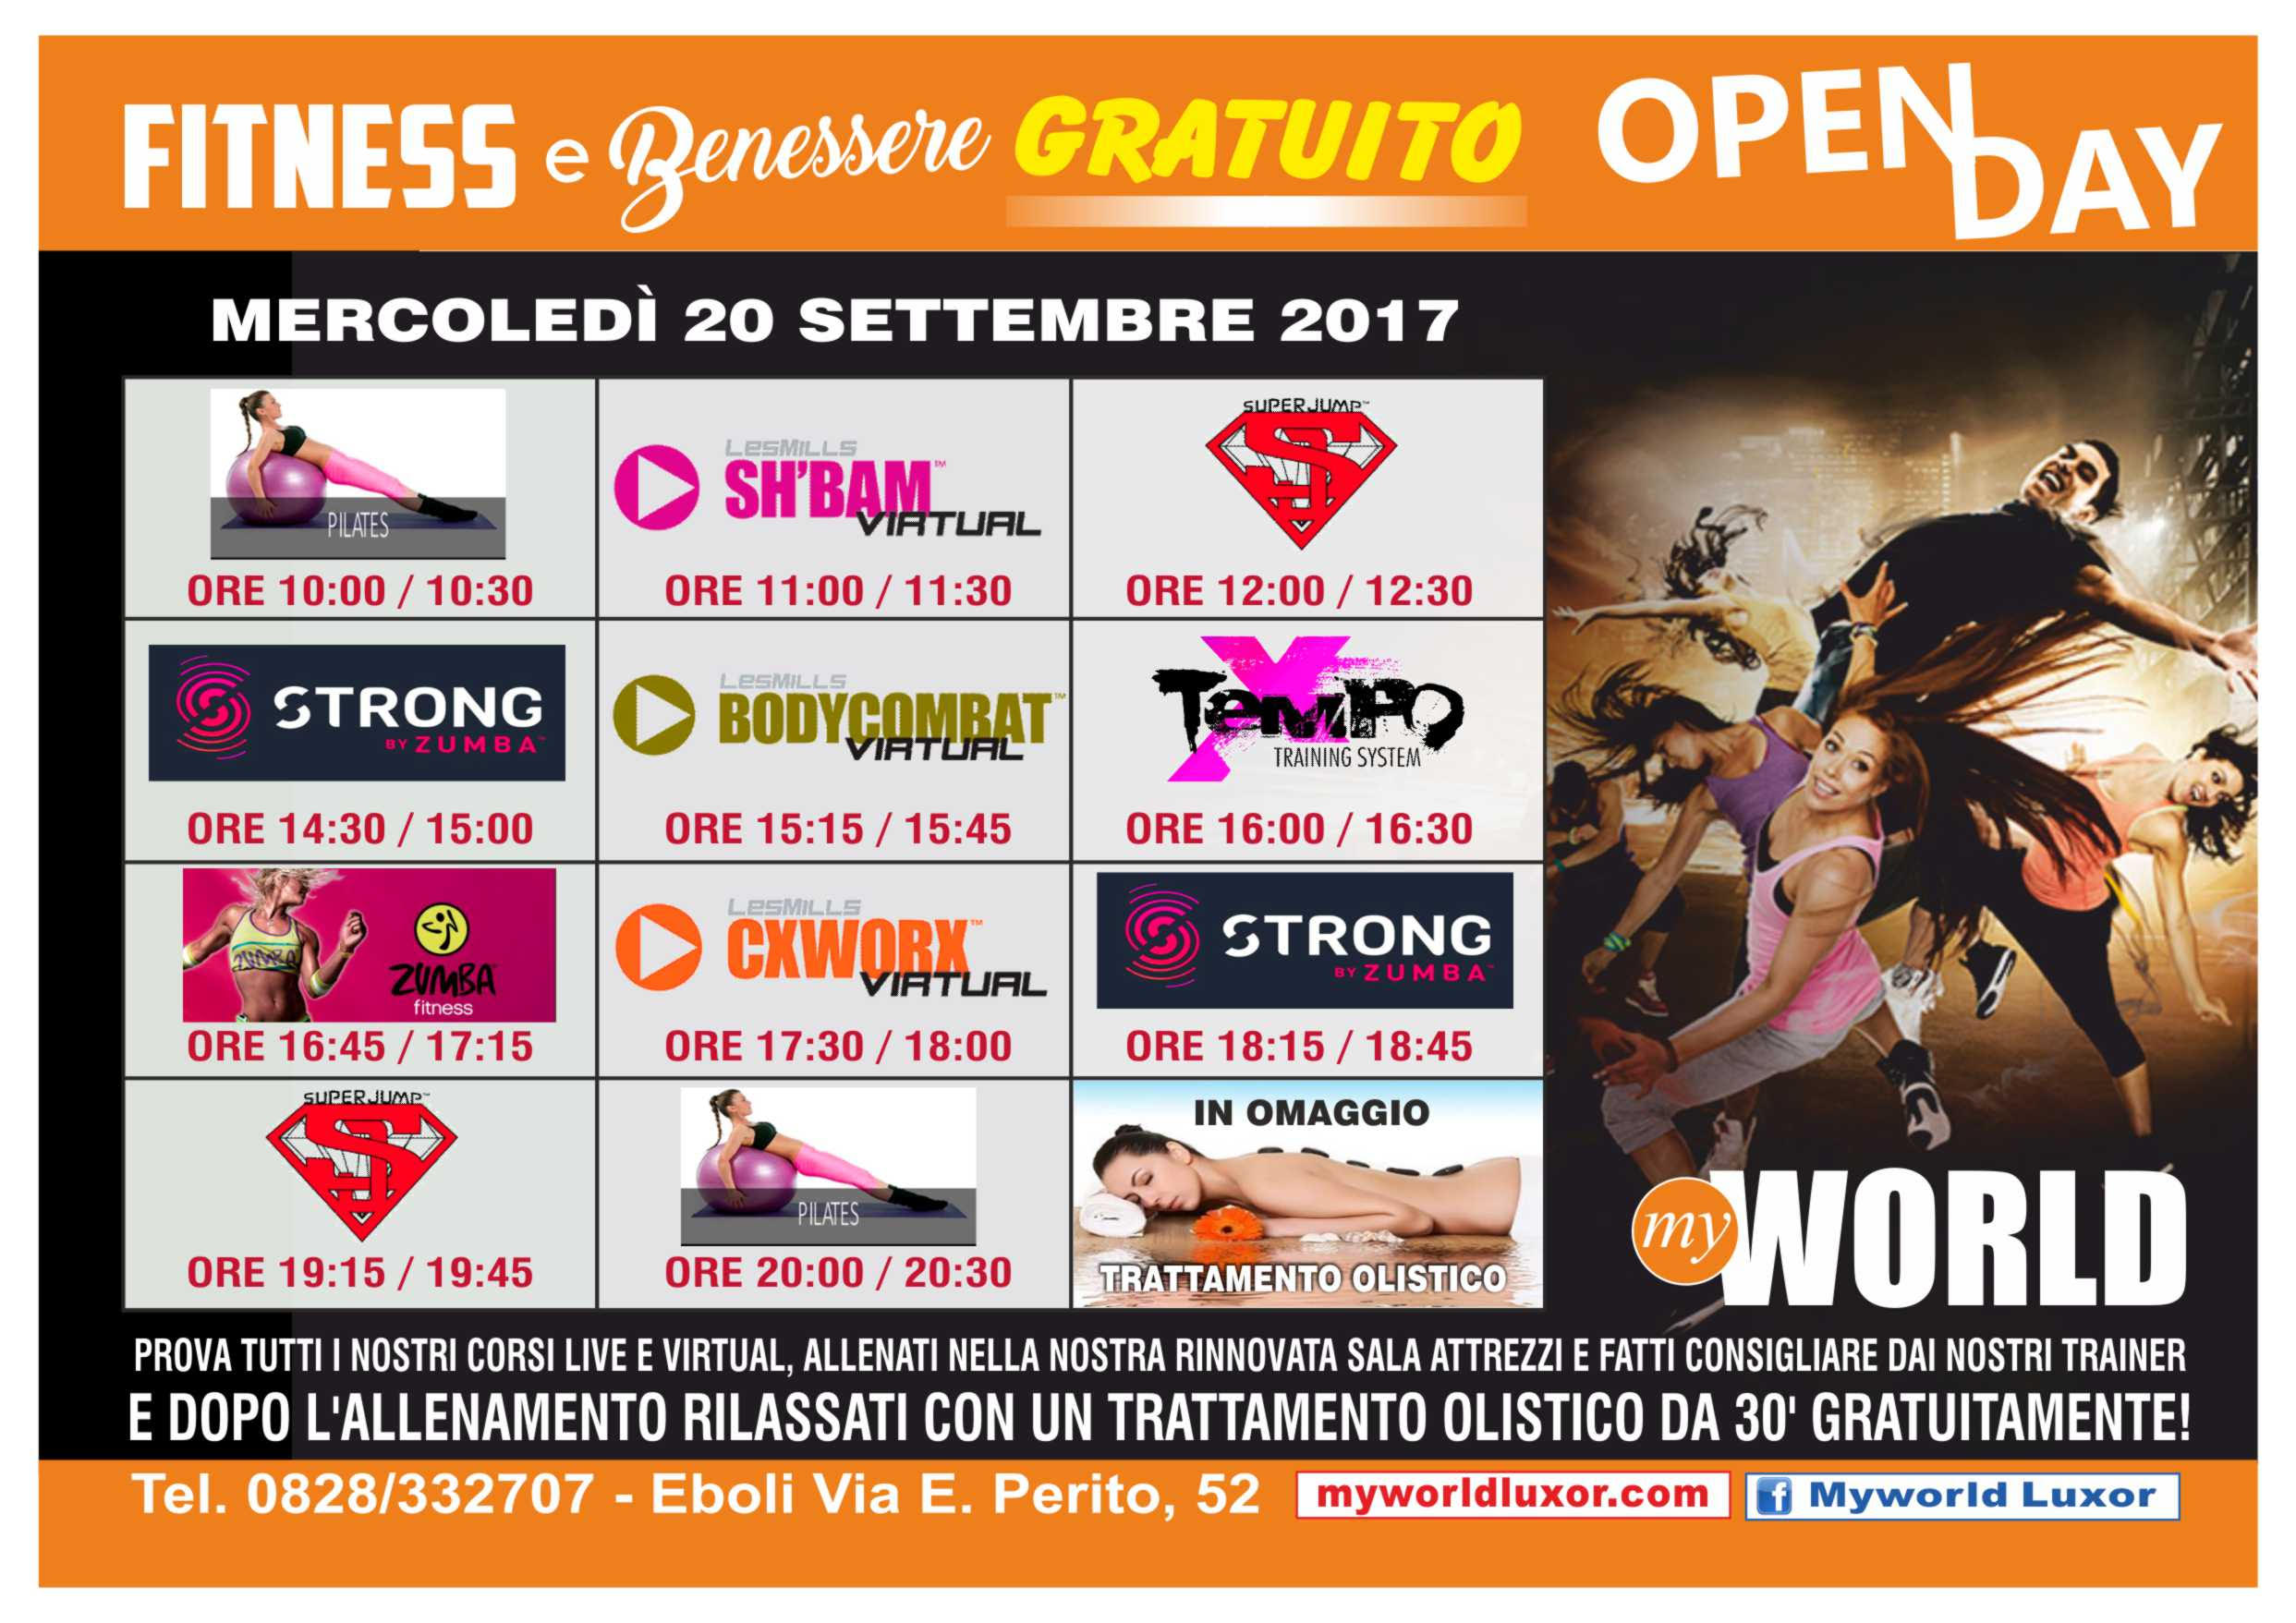 openday settembre 2017